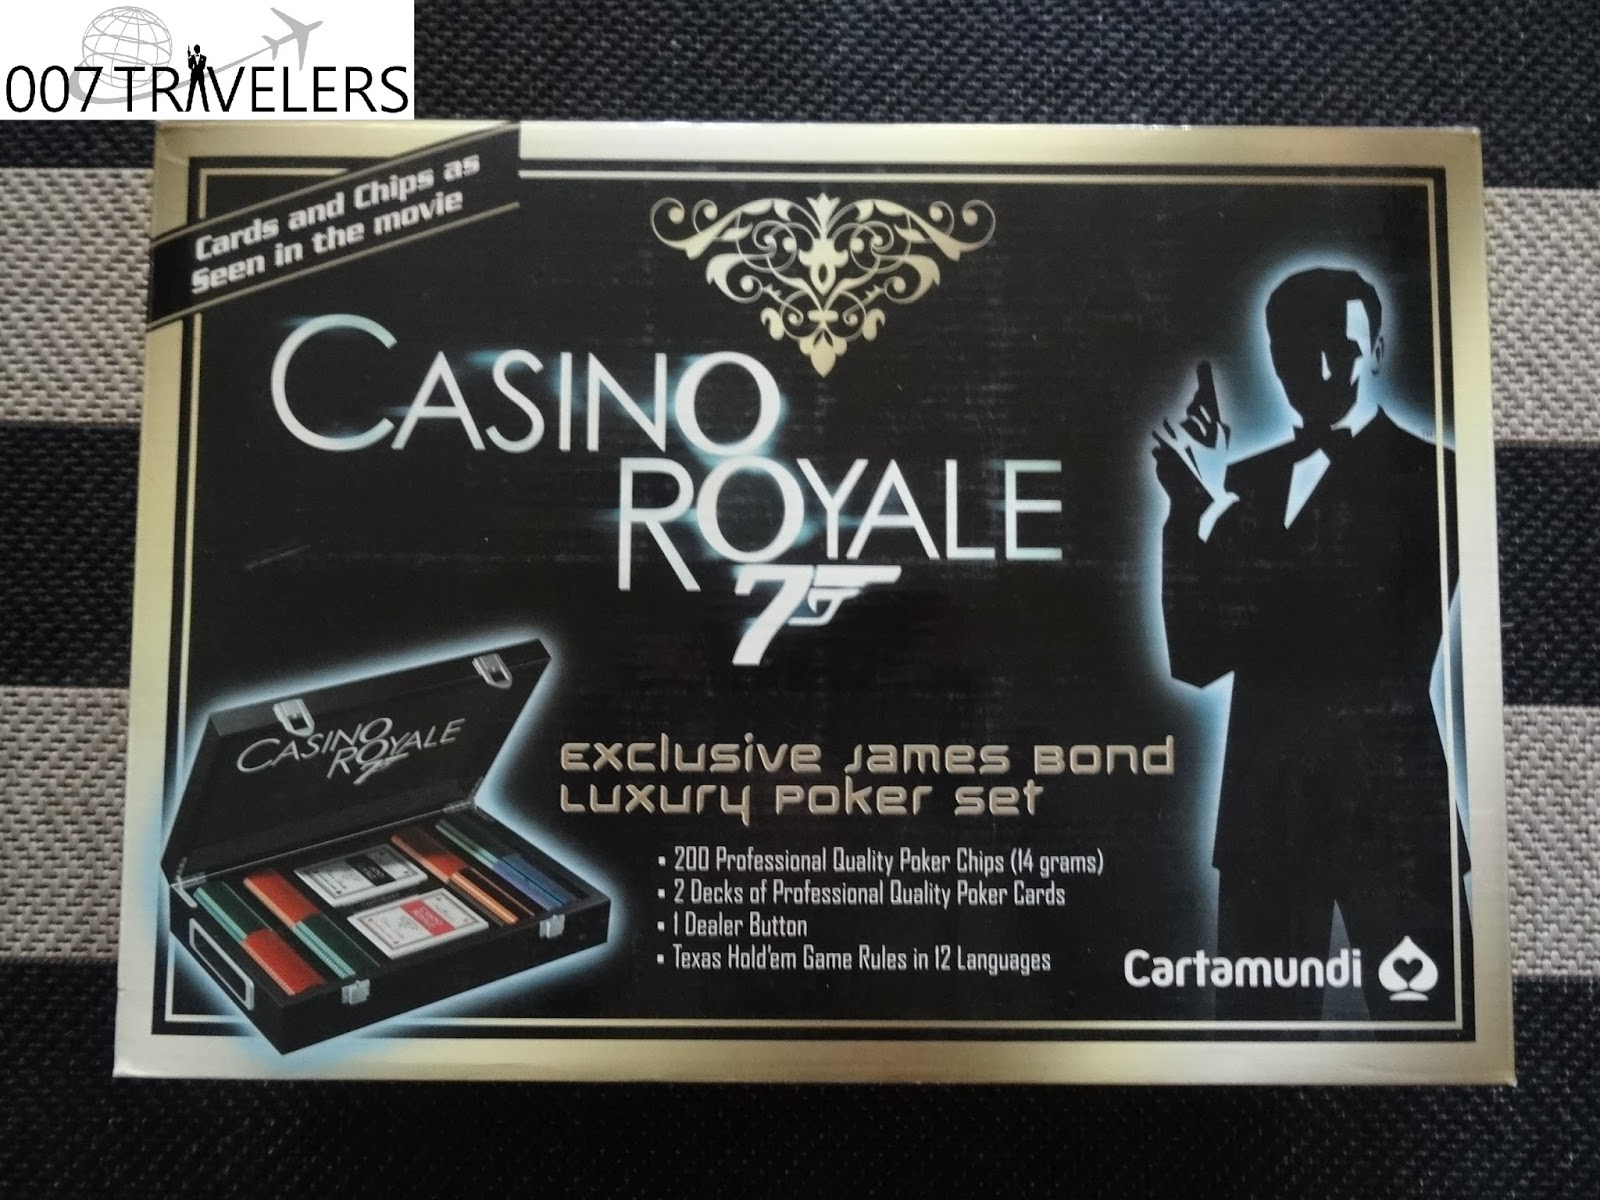 James Bond Casino Royale Poker Set